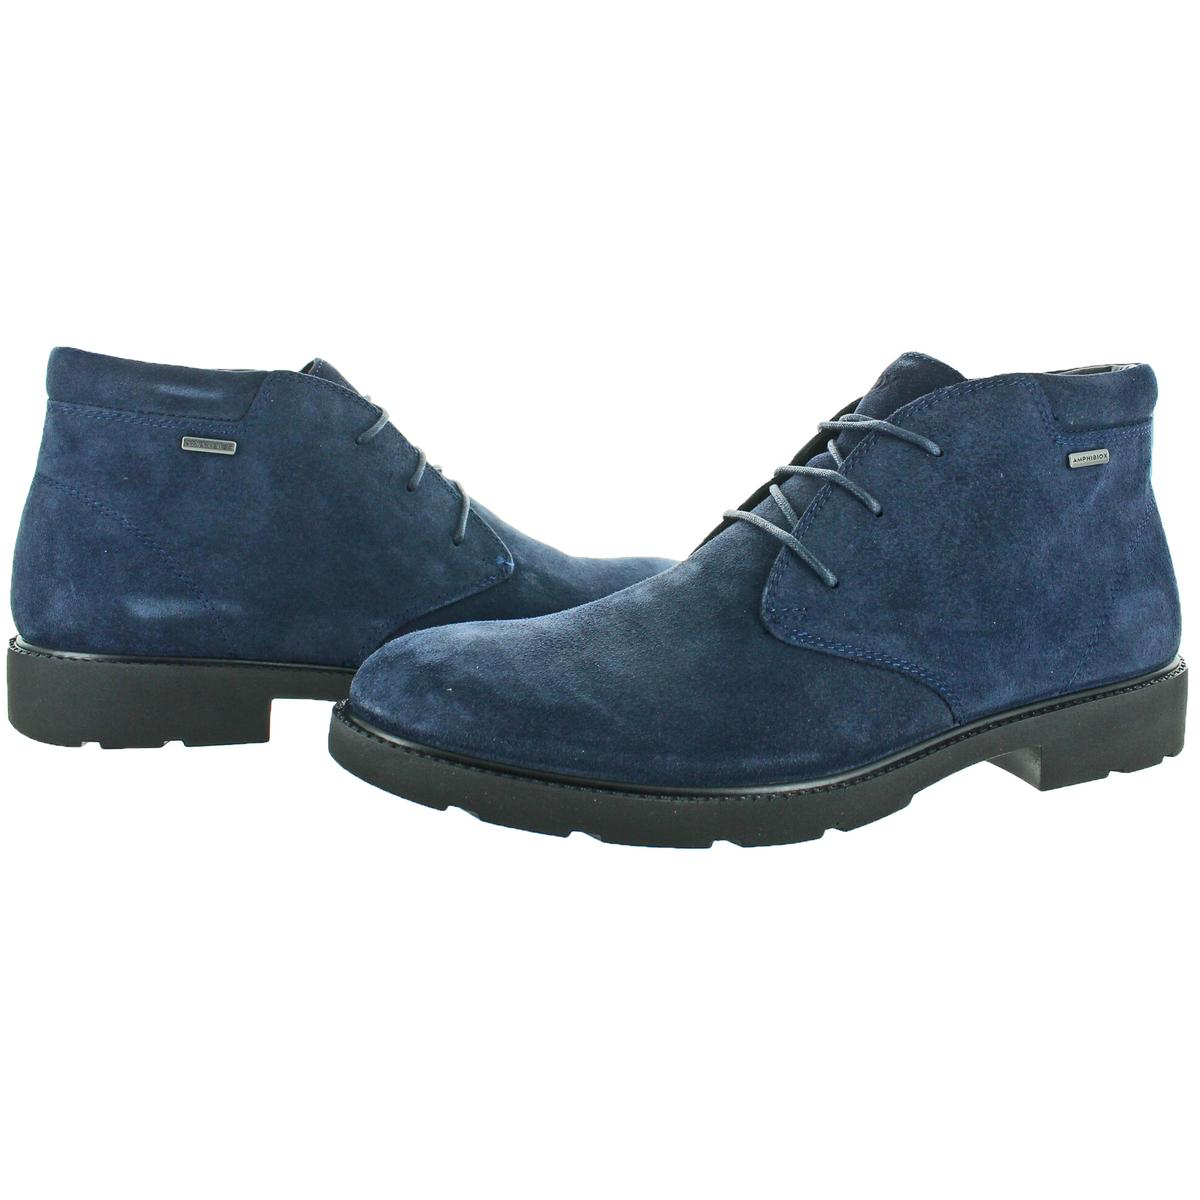 Geox-Rubbiano-ABX-Men-039-s-Waterproof-Suede-Ankle-Boots thumbnail 9